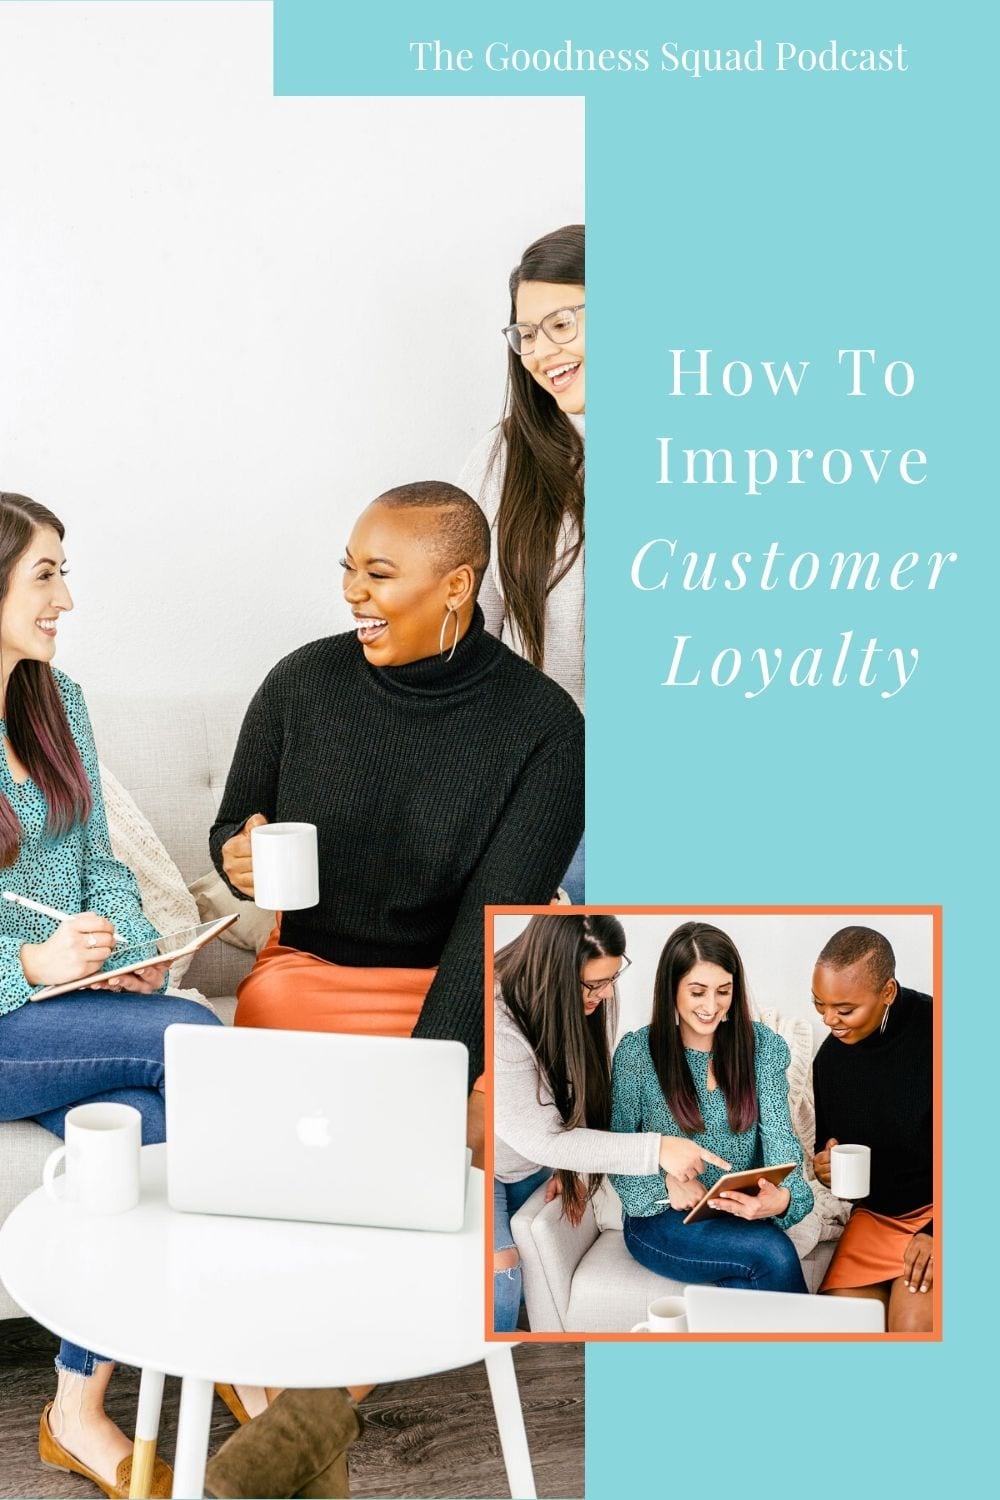 The simple, but neglected, key for building loyal customers